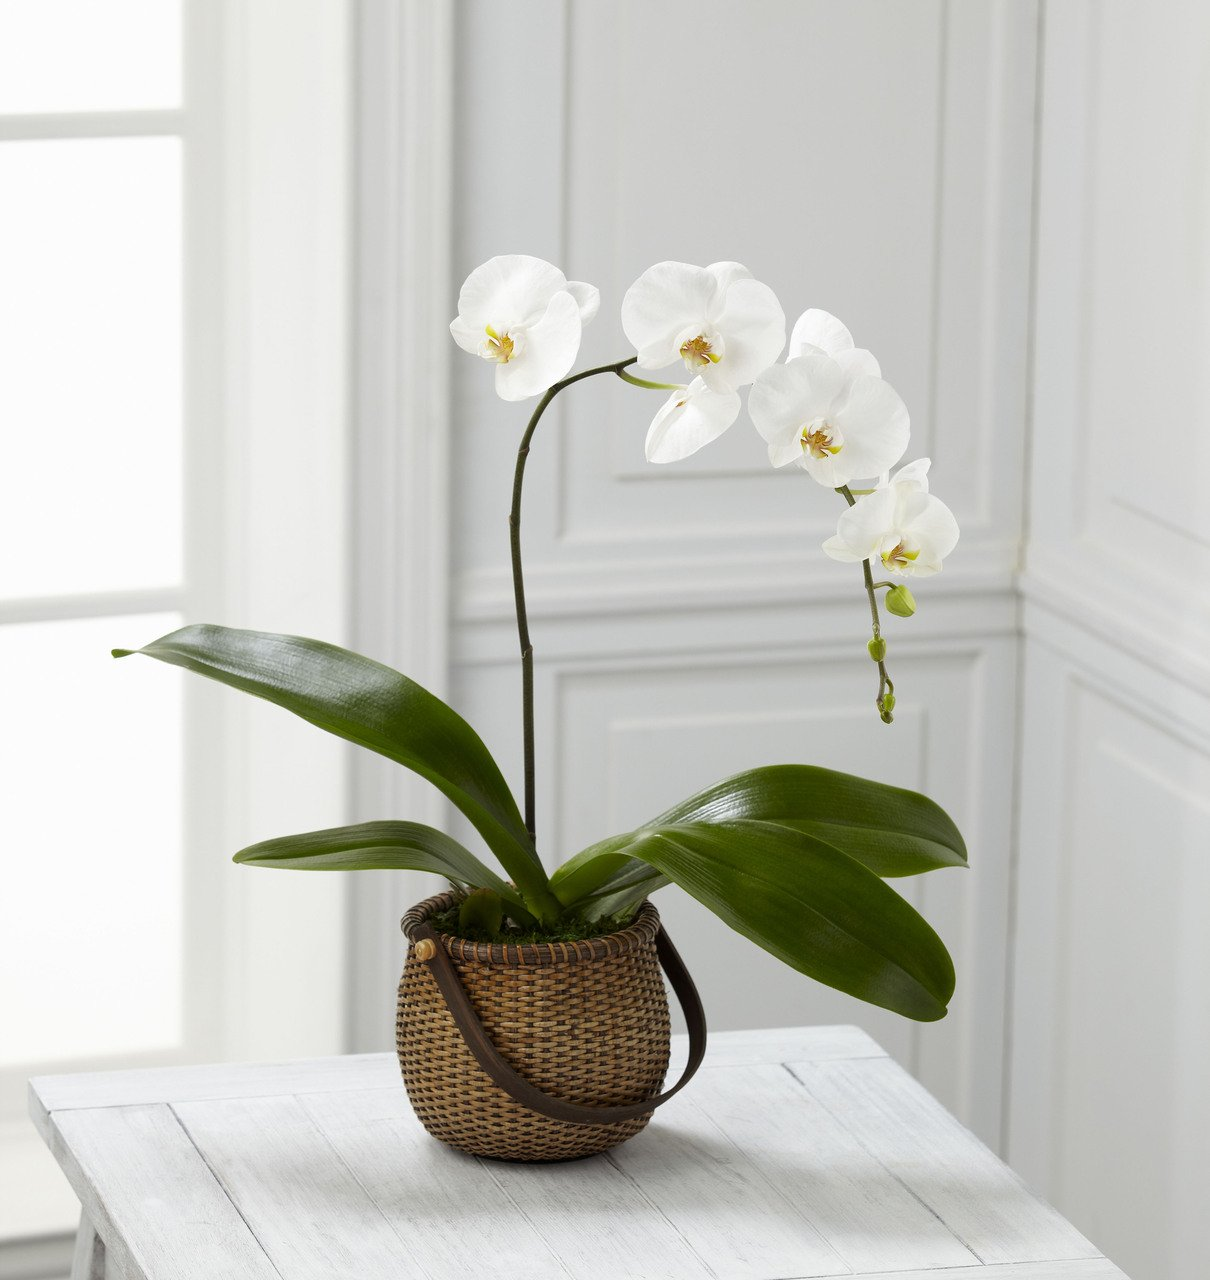 White Phalaenopsis Orchid - Fresh Flowers Hand Delivered in Albuquerque Area